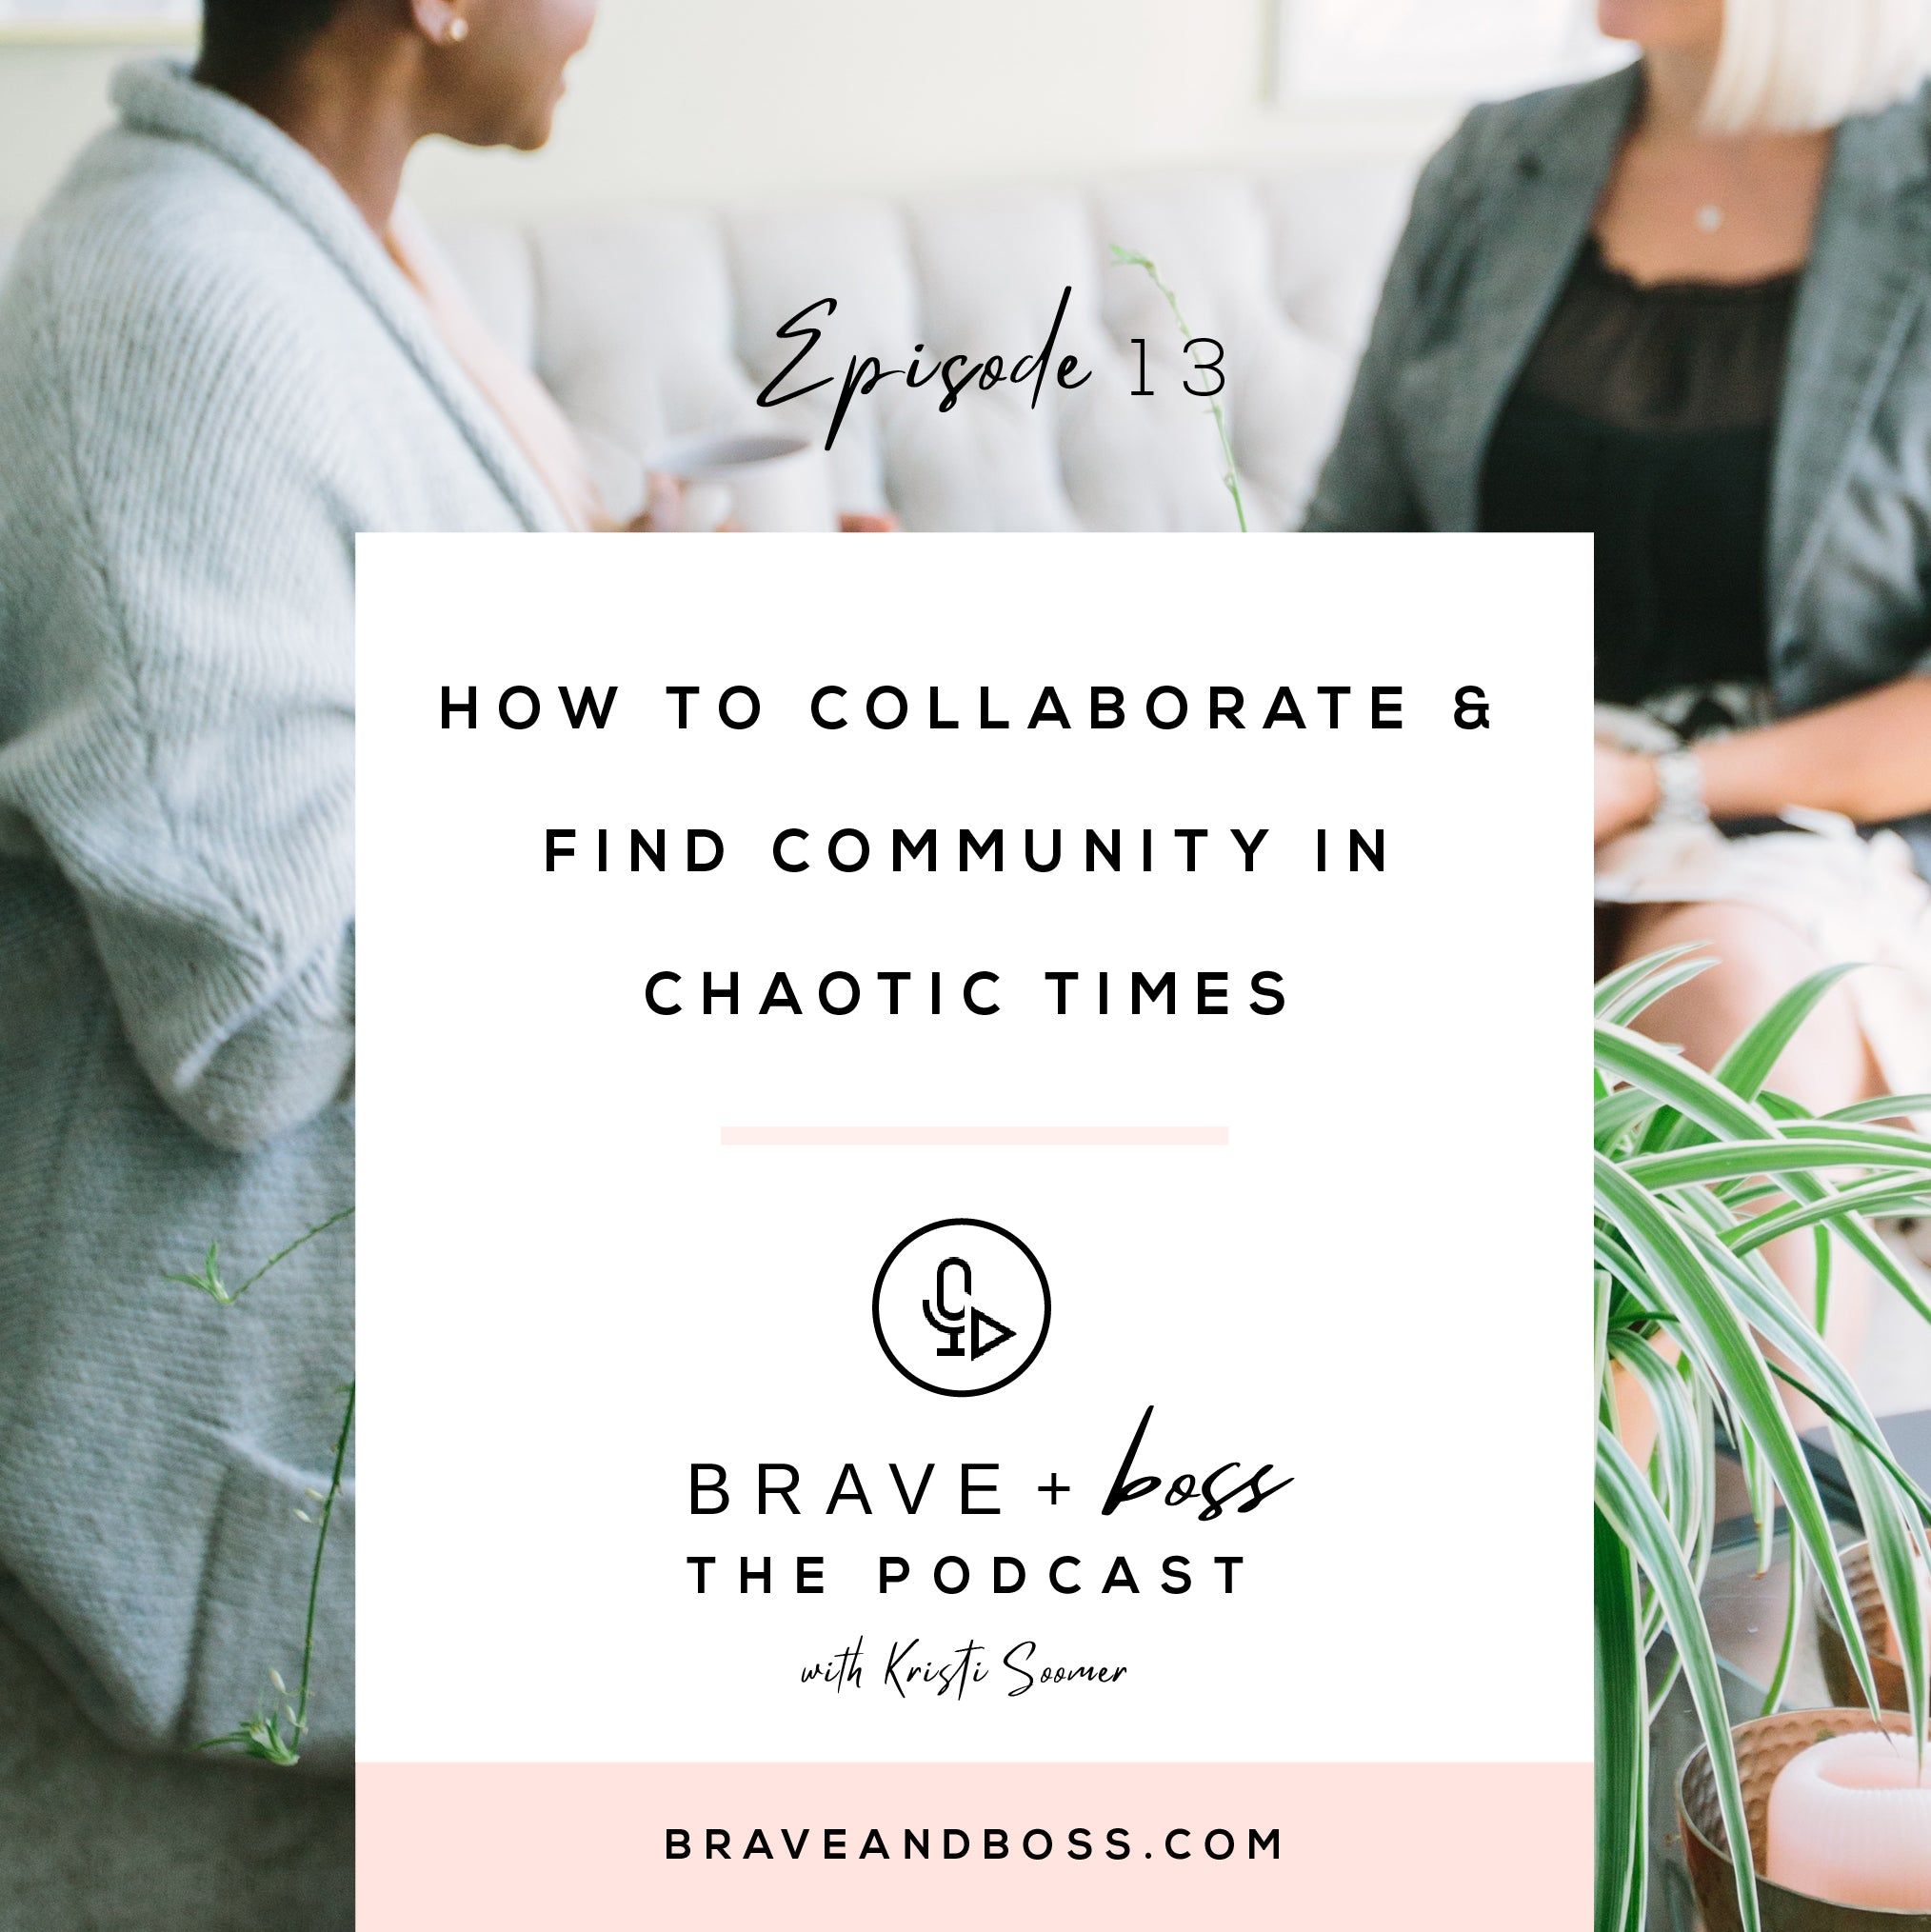 How to Collaborate & Find Community in Chaotic Times